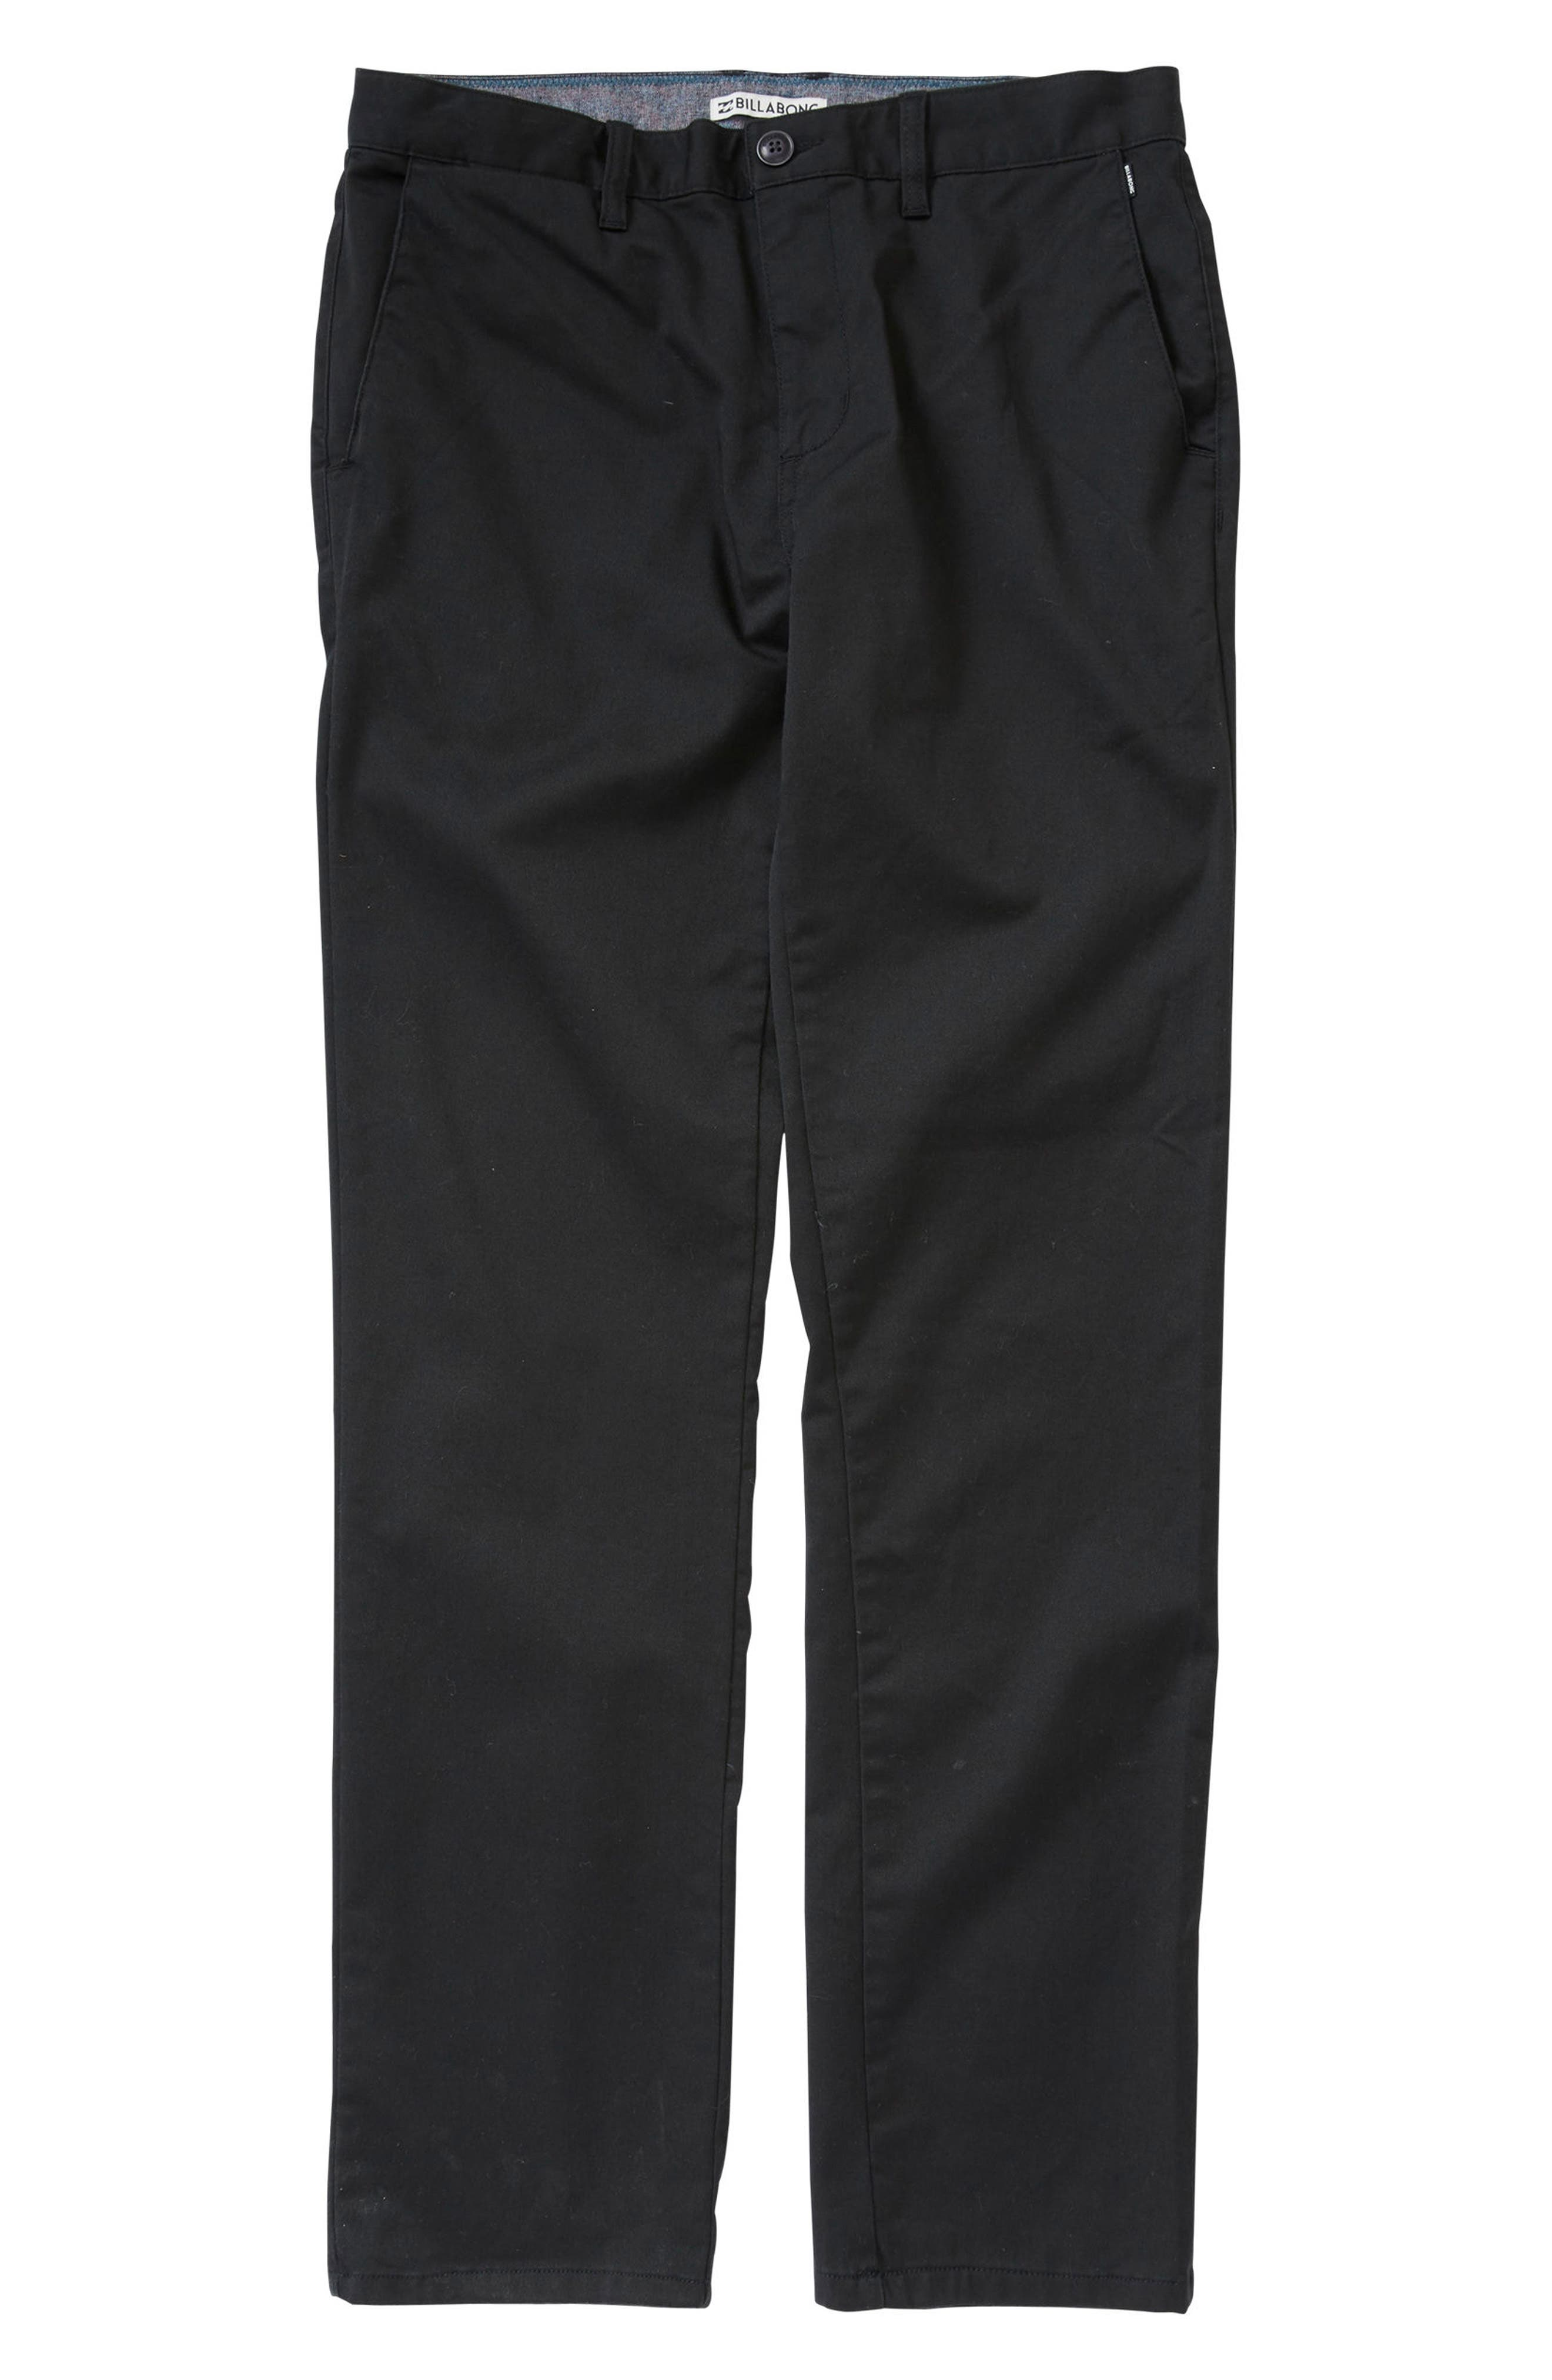 Main Image - Billabong Carter Chinos (Toddler Boys & Little Boys)